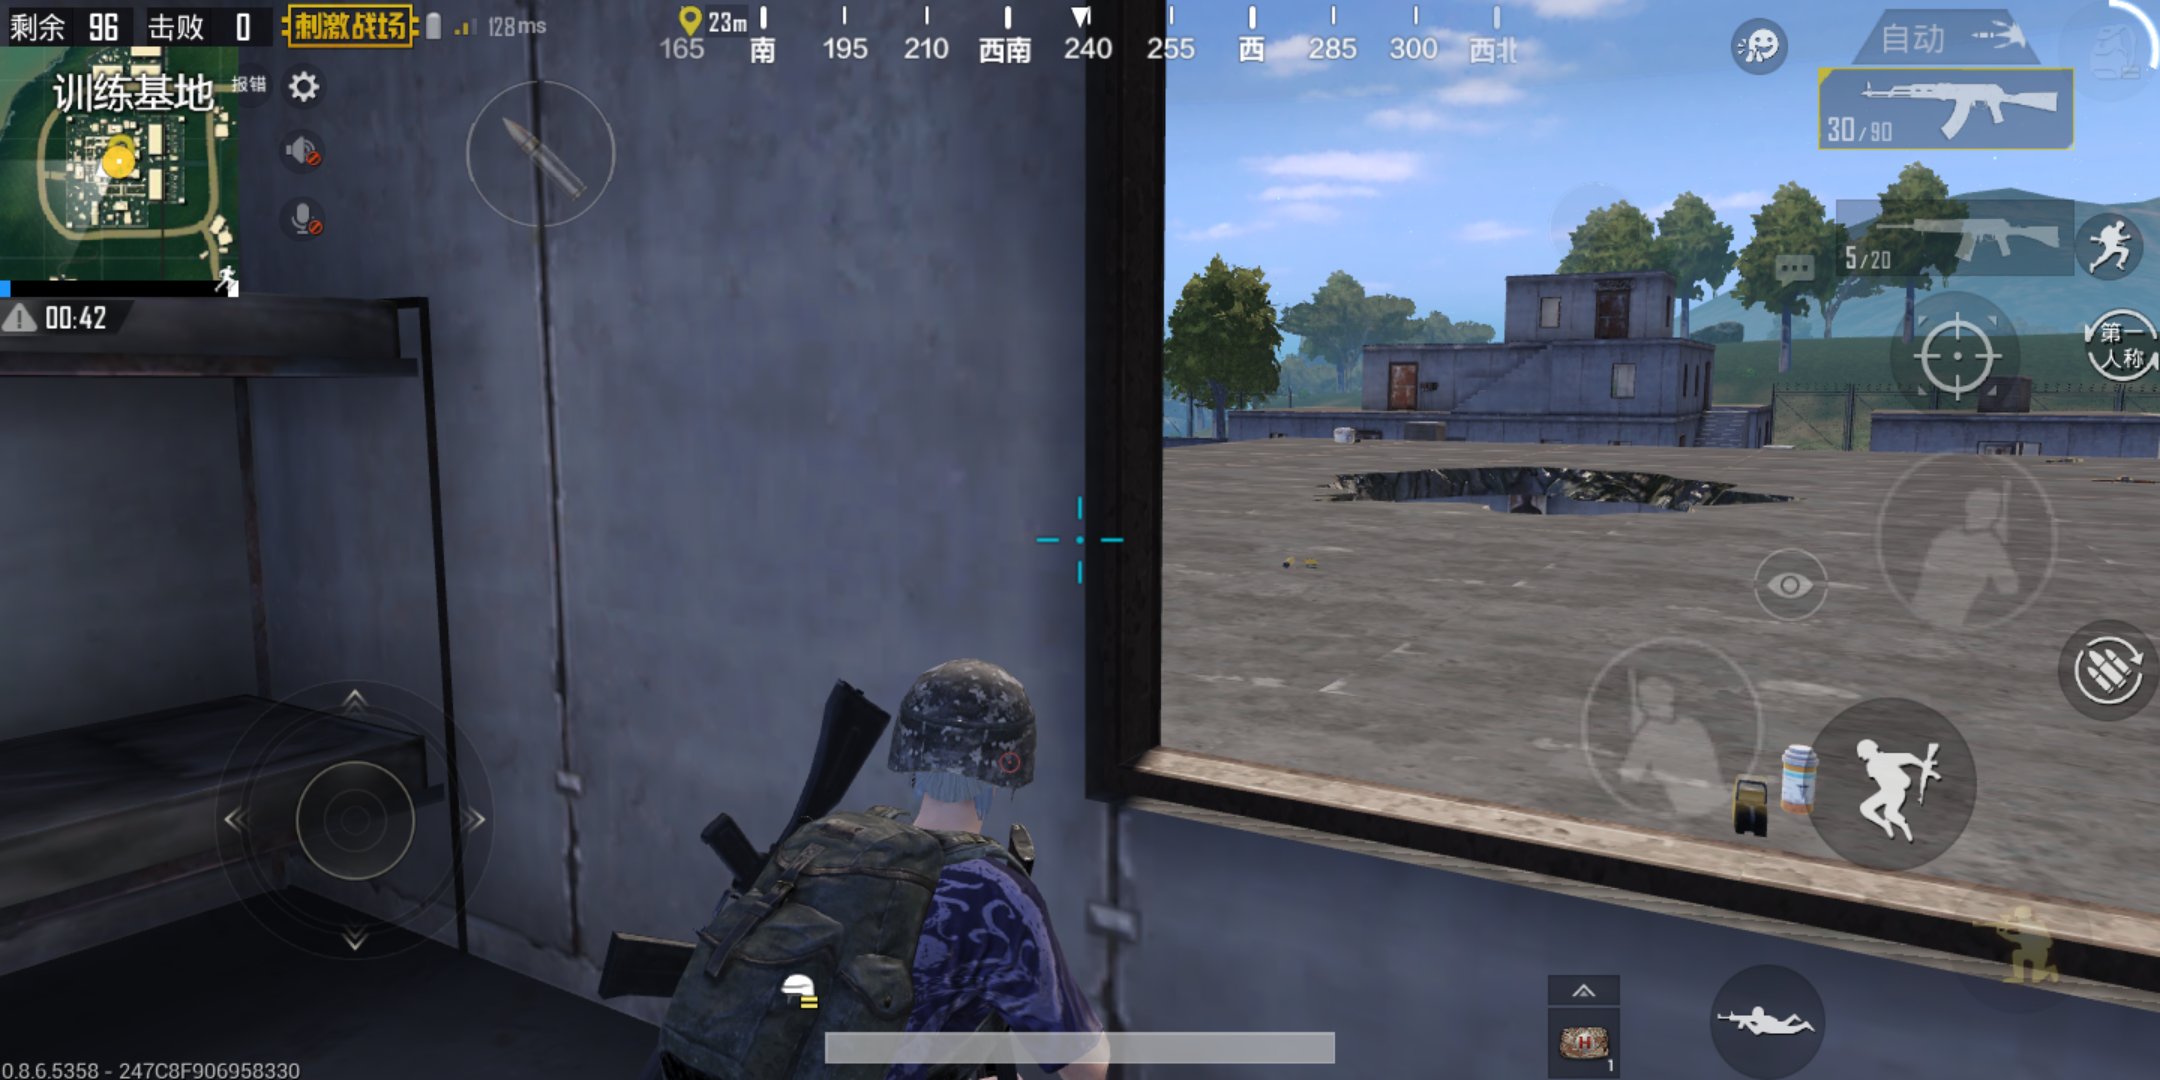 Screenshot_2018-07-27-13-44-20-208_com.tencent.tm.png